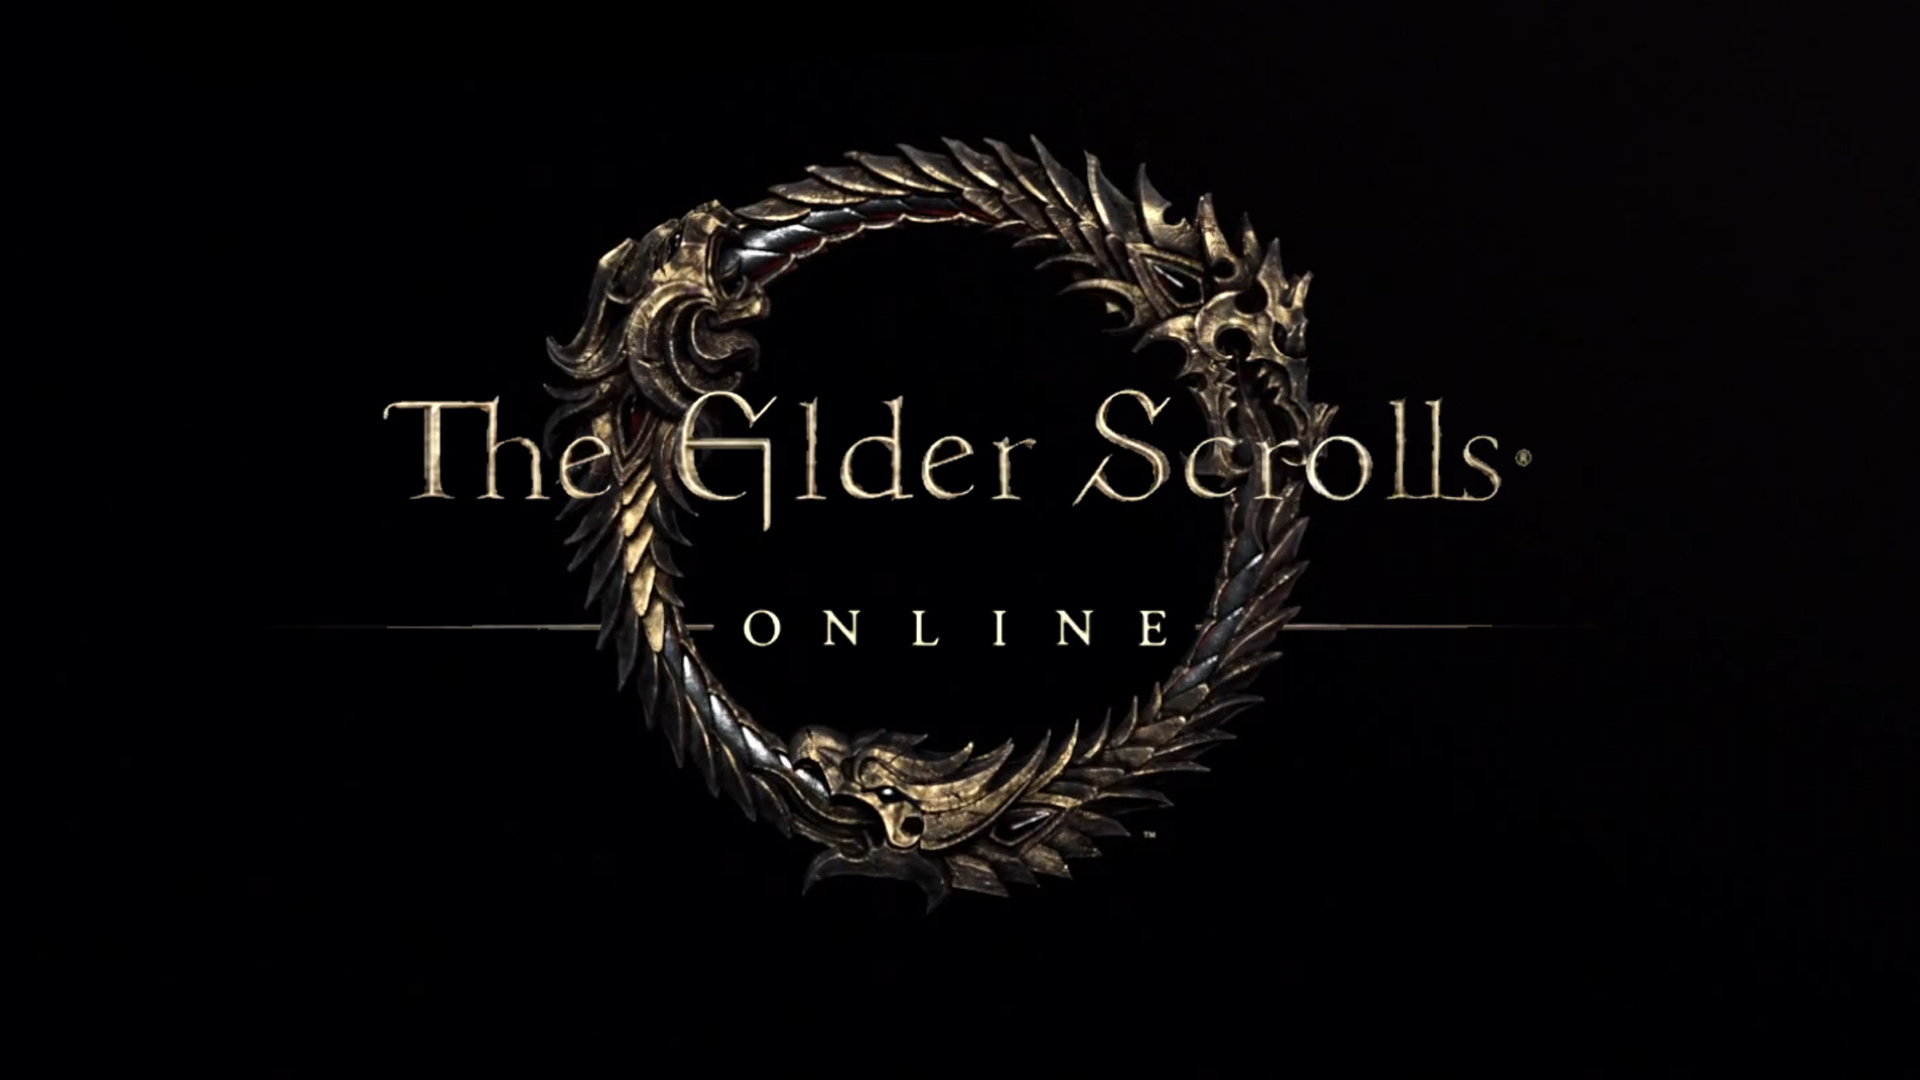 The Elder Scrolls Online The Elder Scrolls Online Review